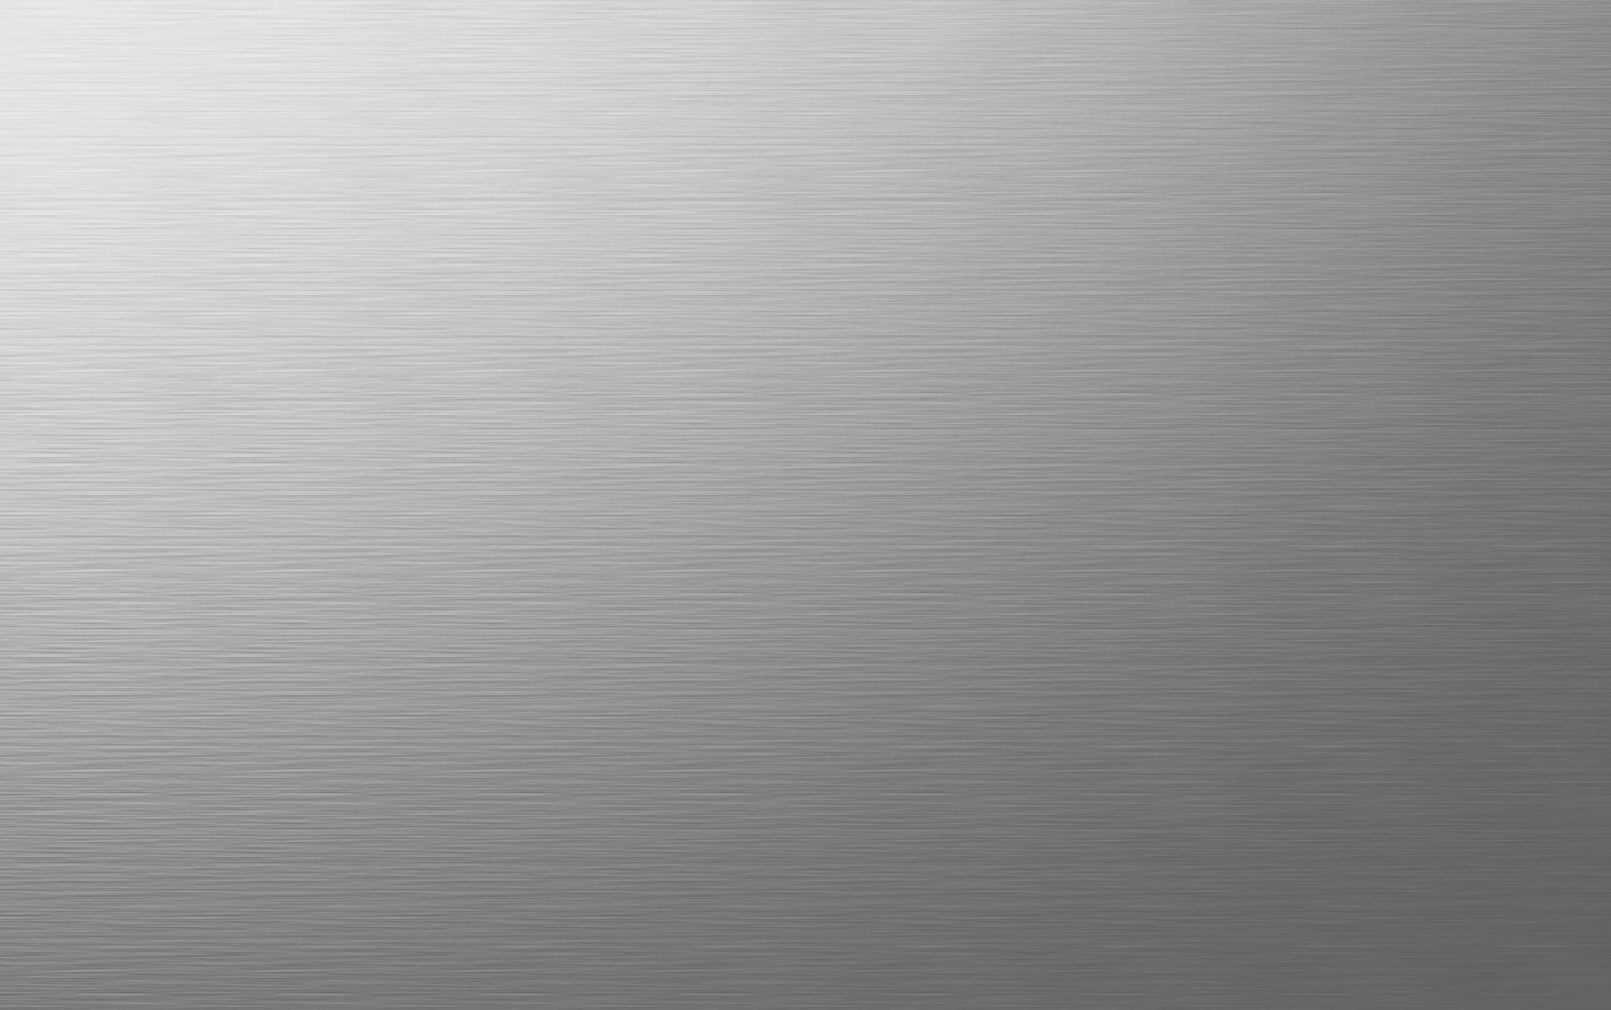 brushed stainless steel wallpaper - photo #14